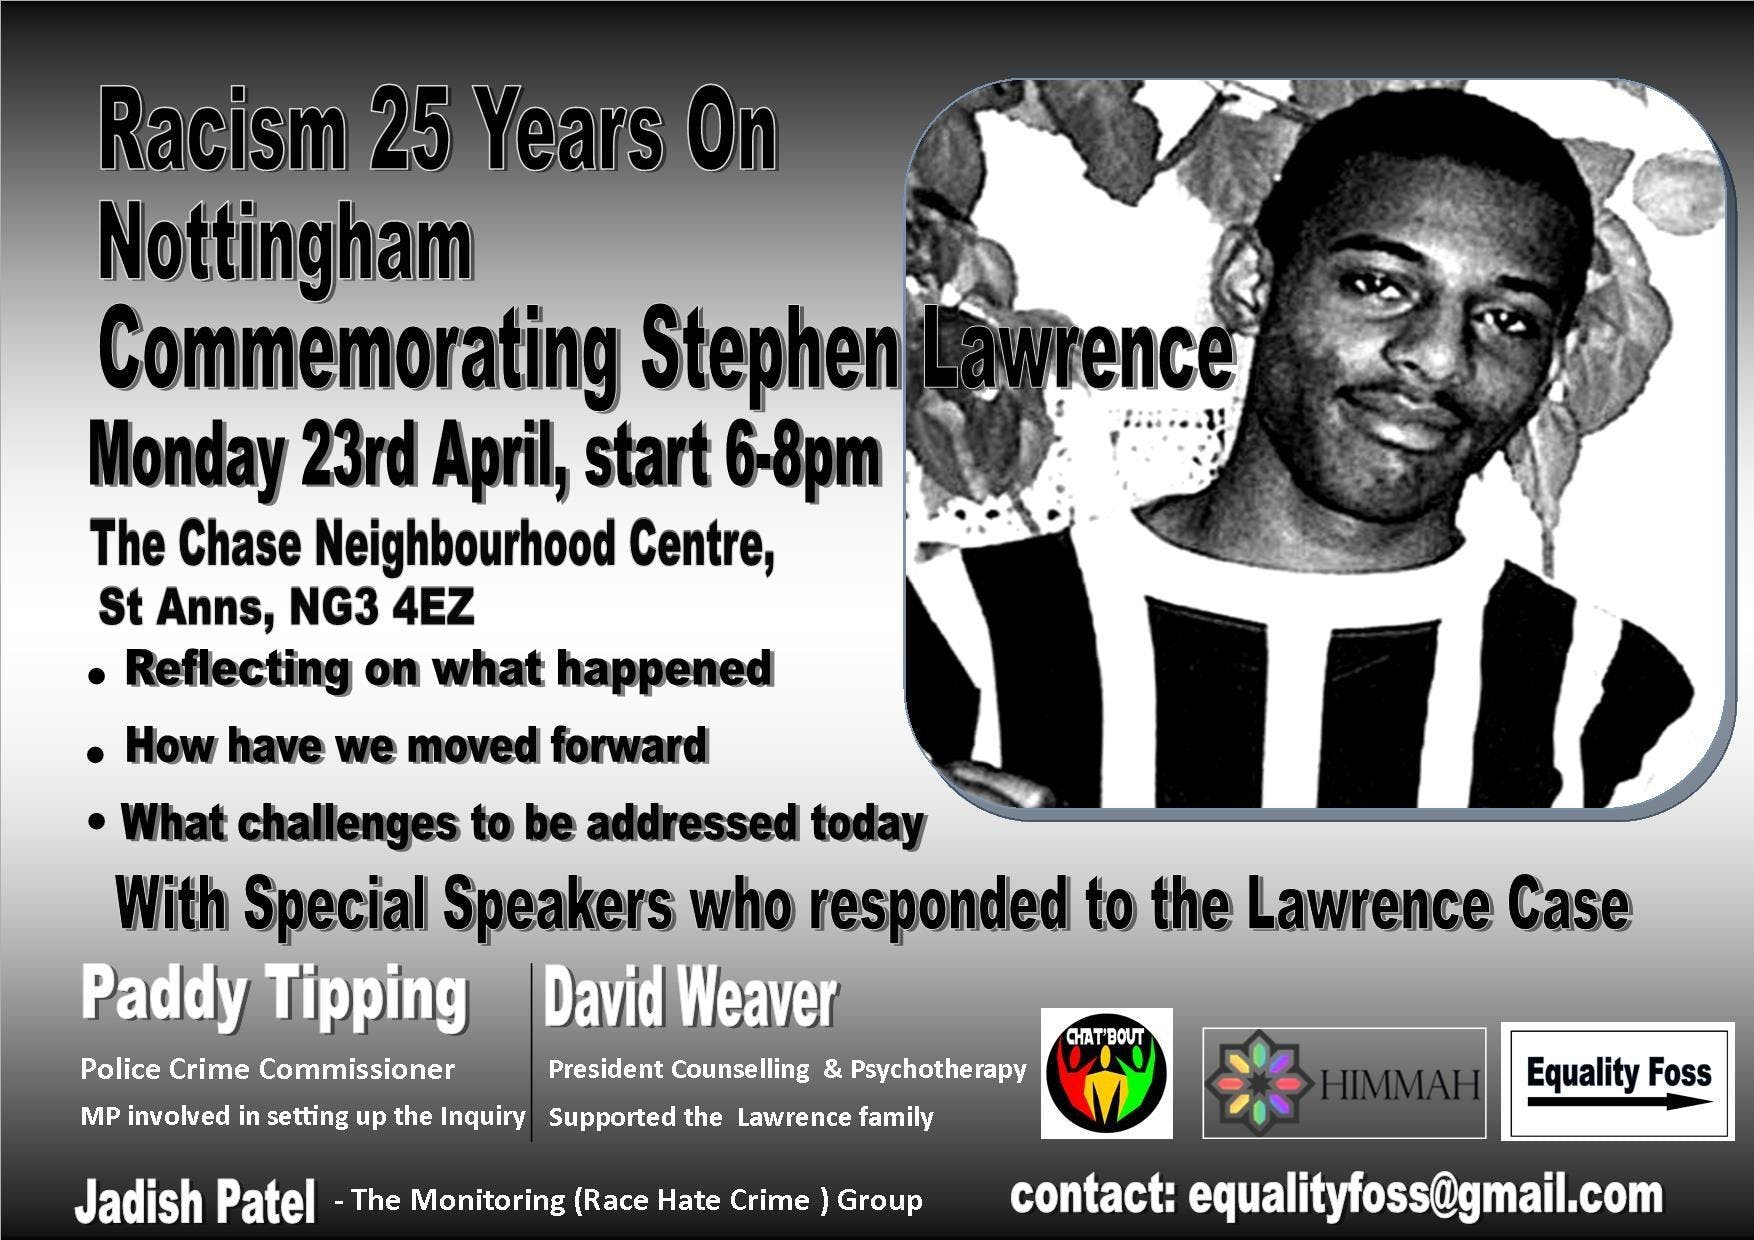 Racism 25 Years on - Stephen Lawrence